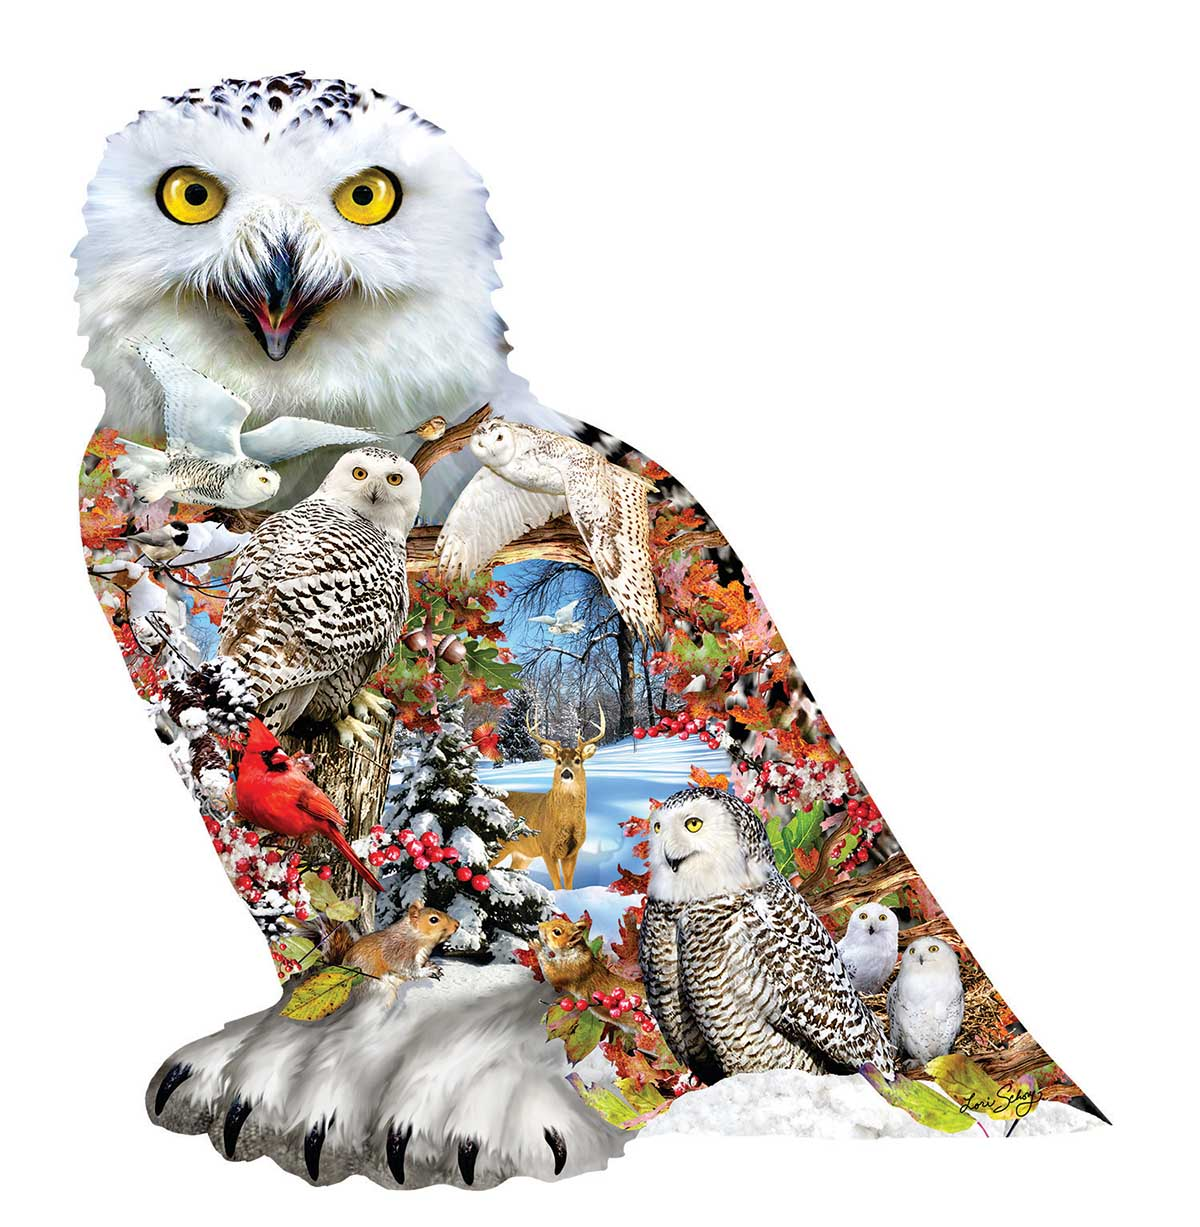 Snowy Owl Birds Shaped Puzzle